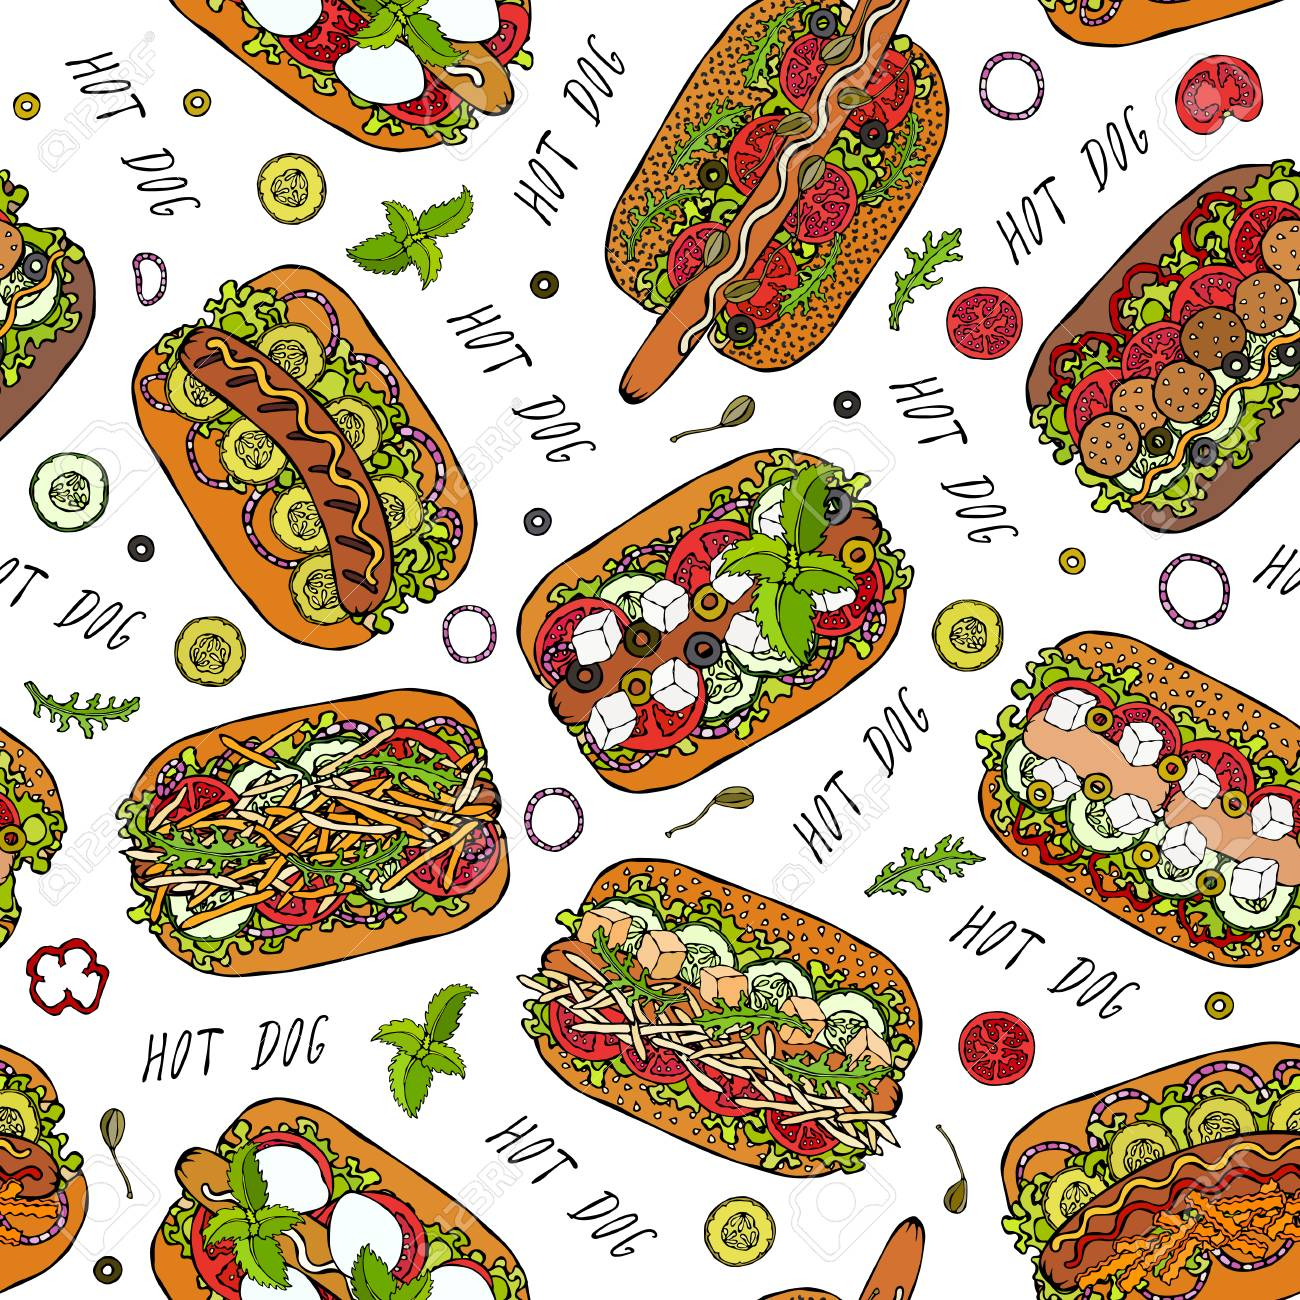 Hot Dog and Lettering Seamless Endless Pattern. Many Ingredients. Restaurant or Cafe Menu Background. Street Fast Food Collection. Realistic Hand Drawn High Quality Vector Illustration. Doodle Style - 114966646